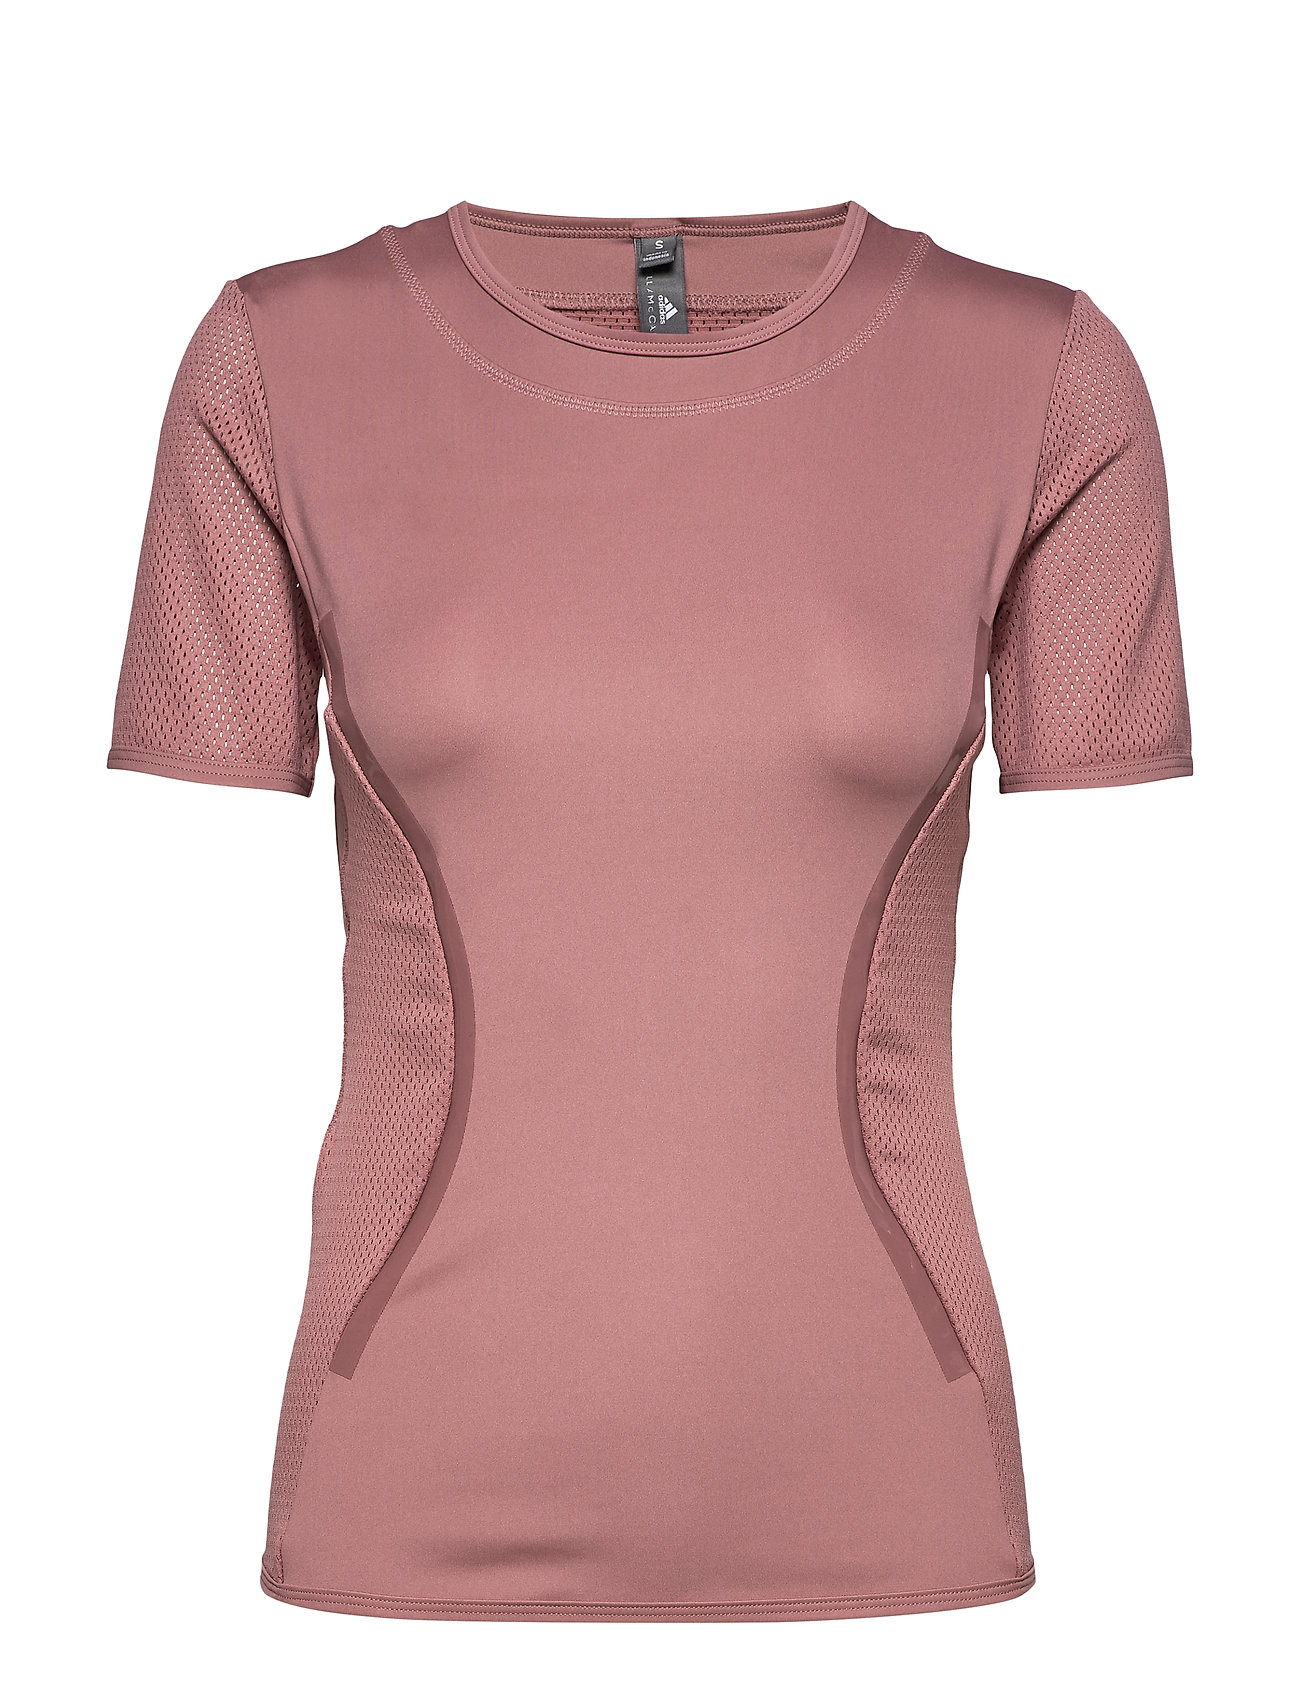 adidas by Stella McCartney P ESS TEE - BLUMAU